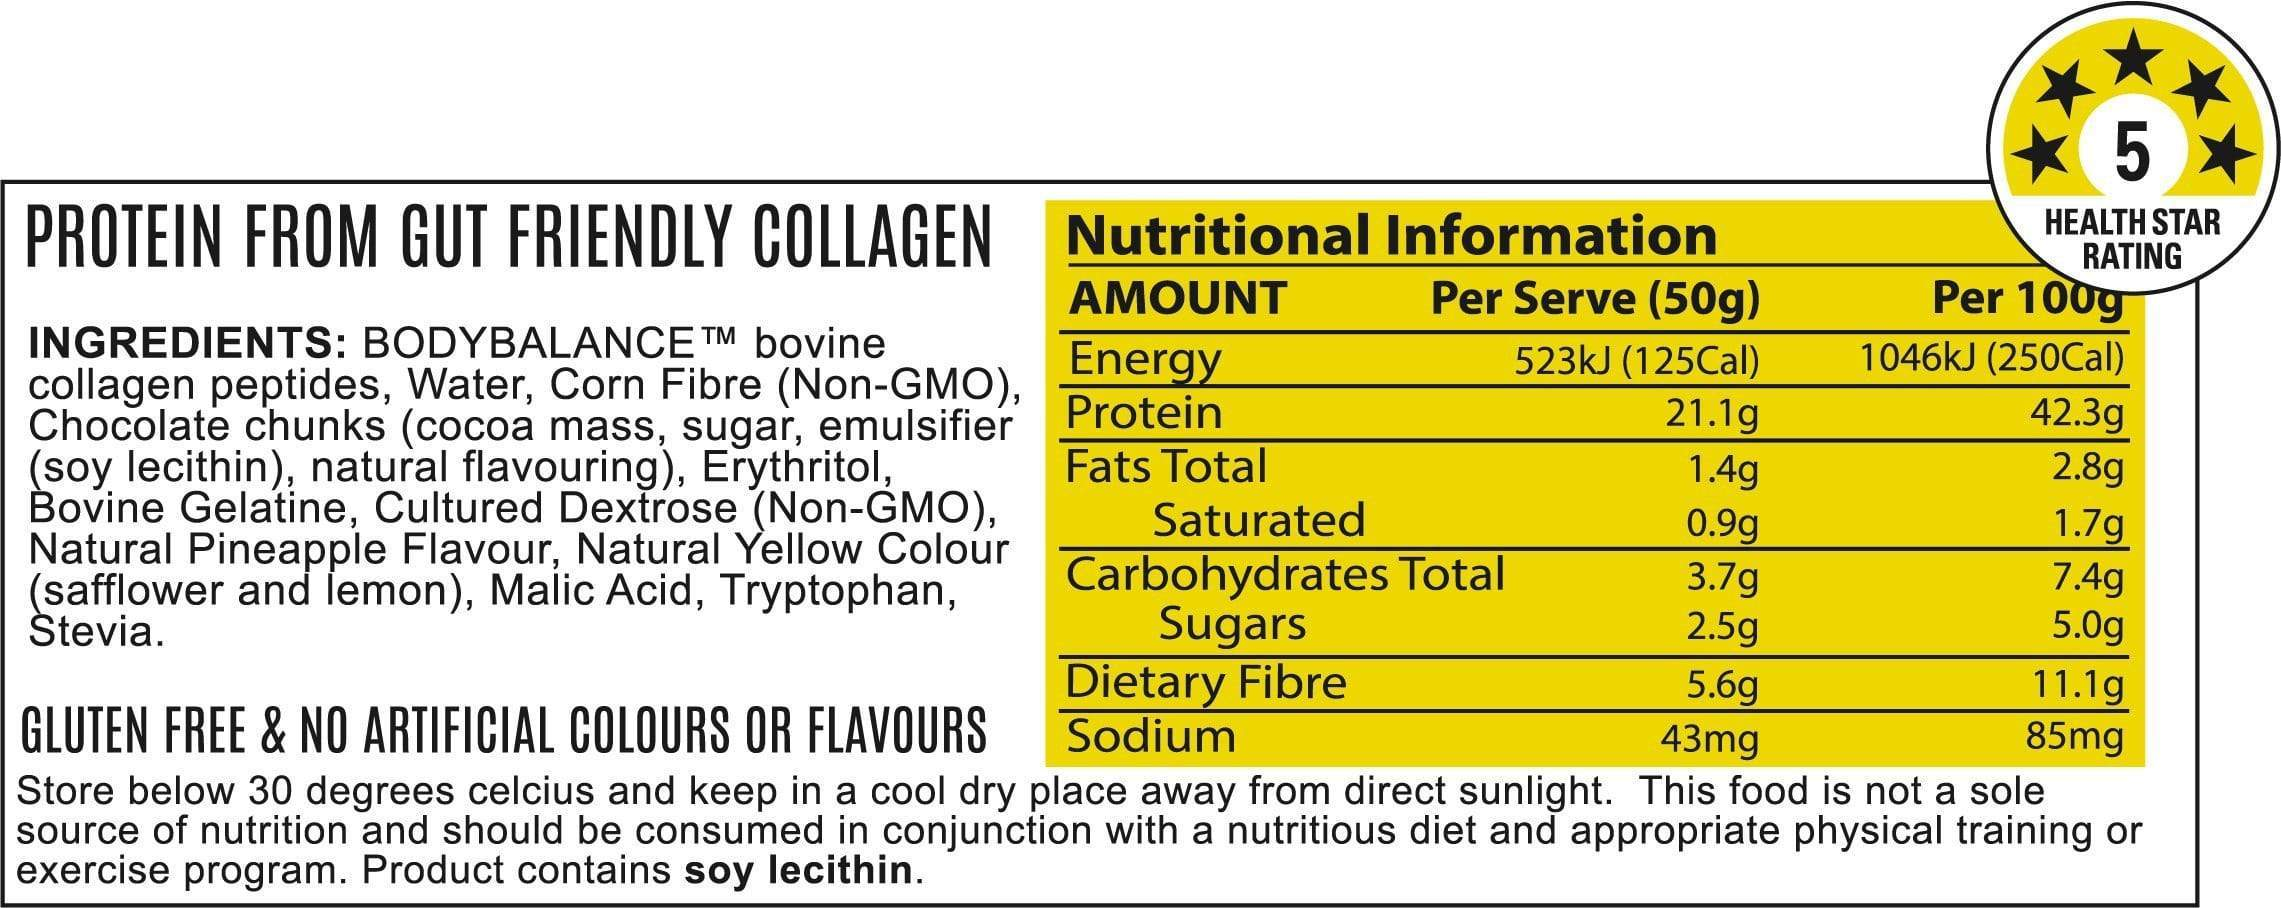 Nutrition Facts For ATP Noway Mallow Protein Bar 6 pack